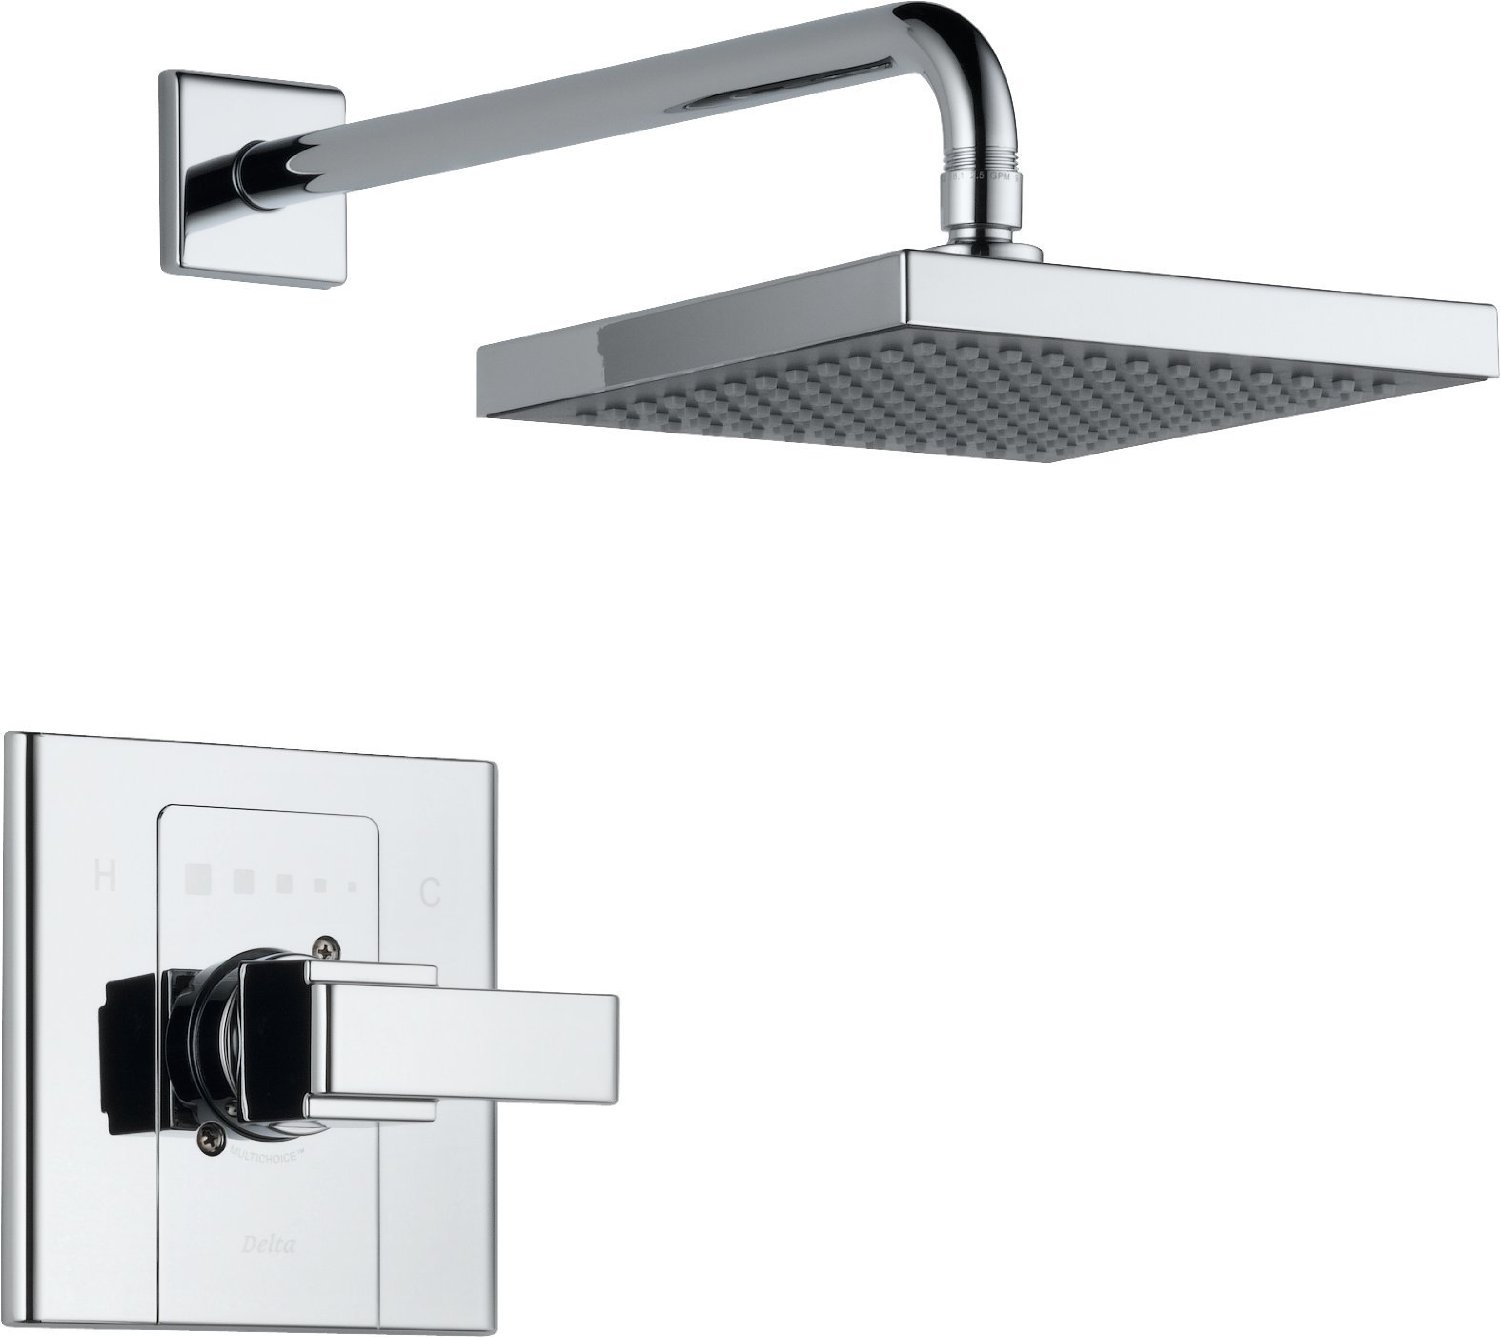 Review Of The Delta Rain Shower Head And Faucet